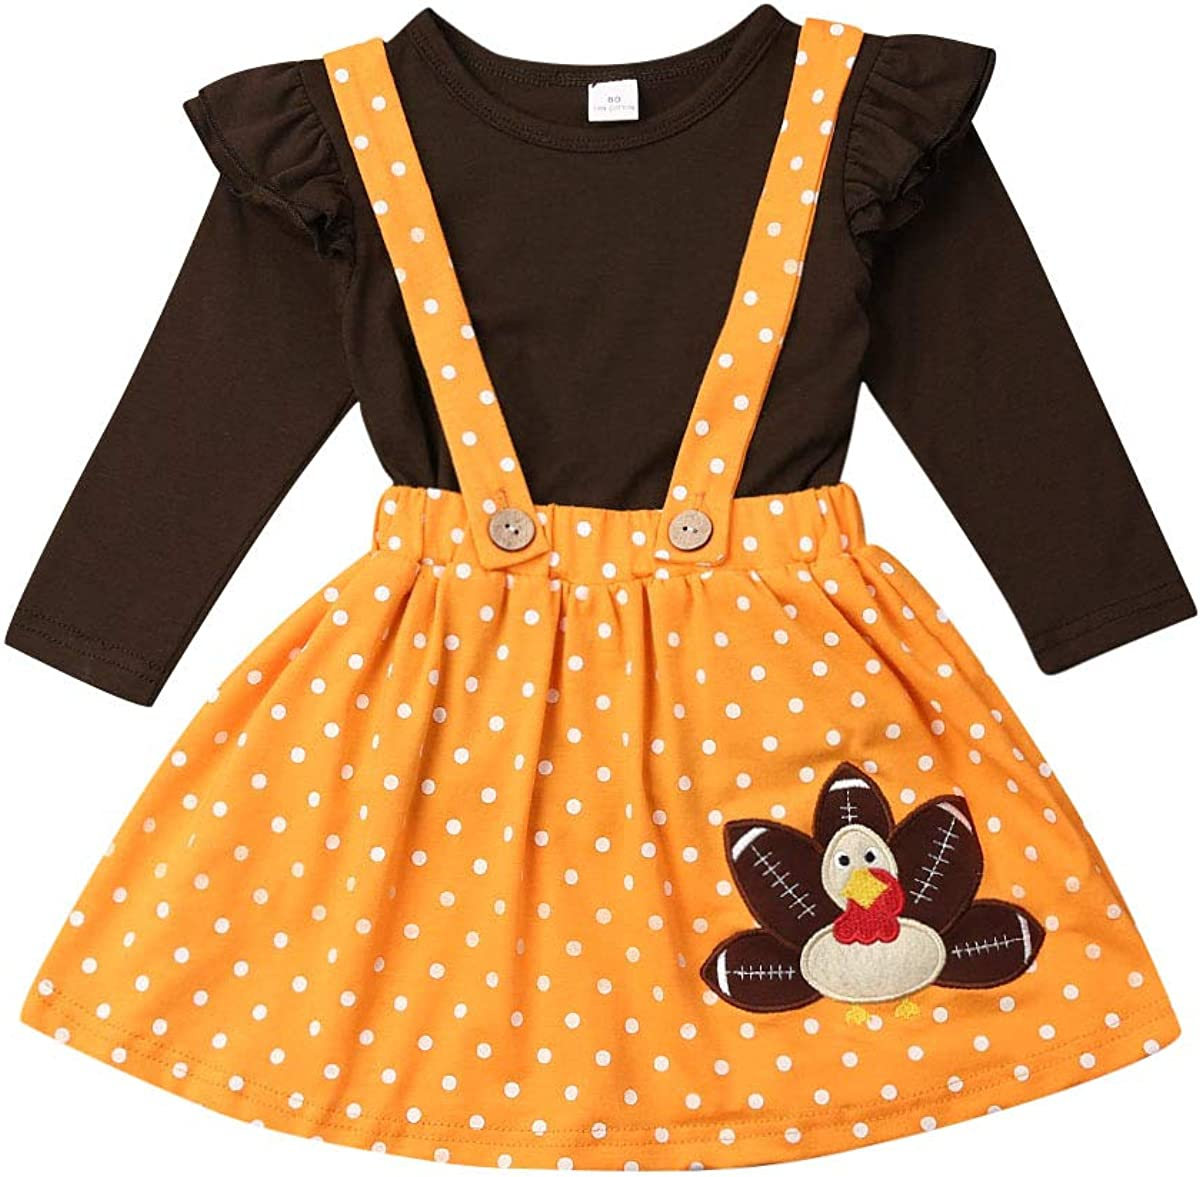 3PCS Toddler Ranking SEAL limited product TOP14 Baby Girls Thanksgiving Outfit Ruffle Little Sleeve